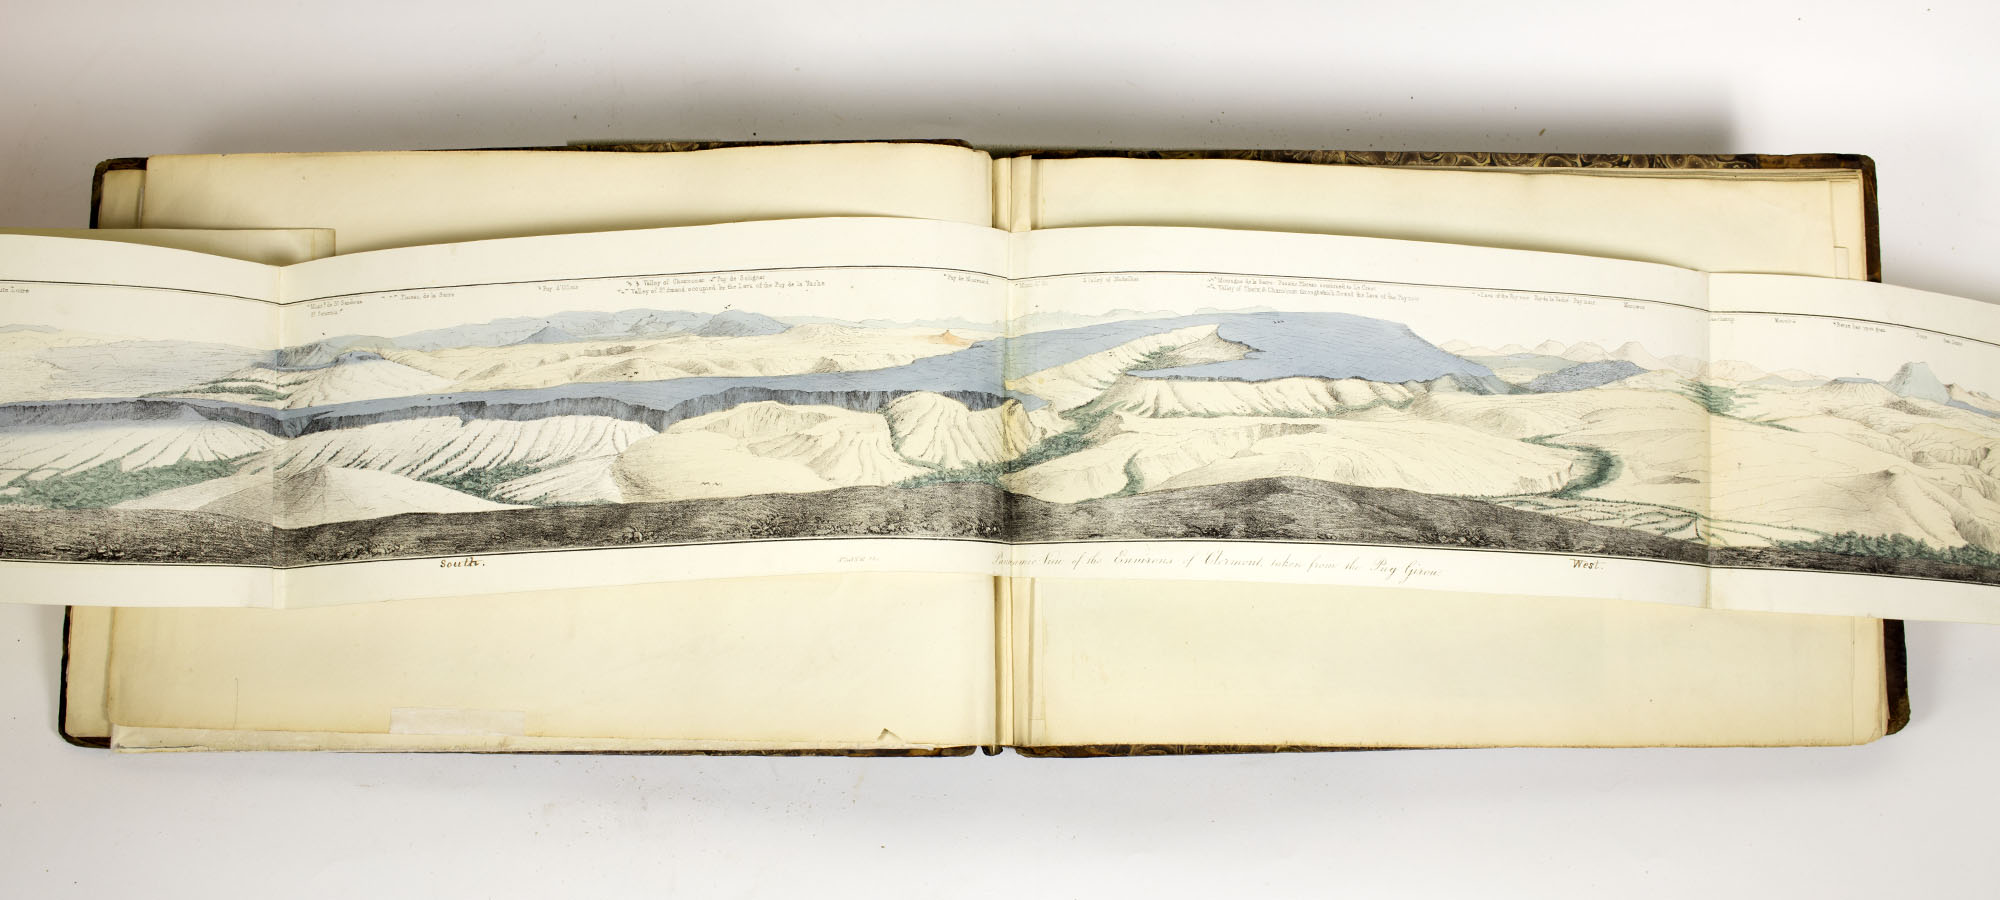 George Poulett Scrope, Memoir on the Geology of Central France (London, 1827).